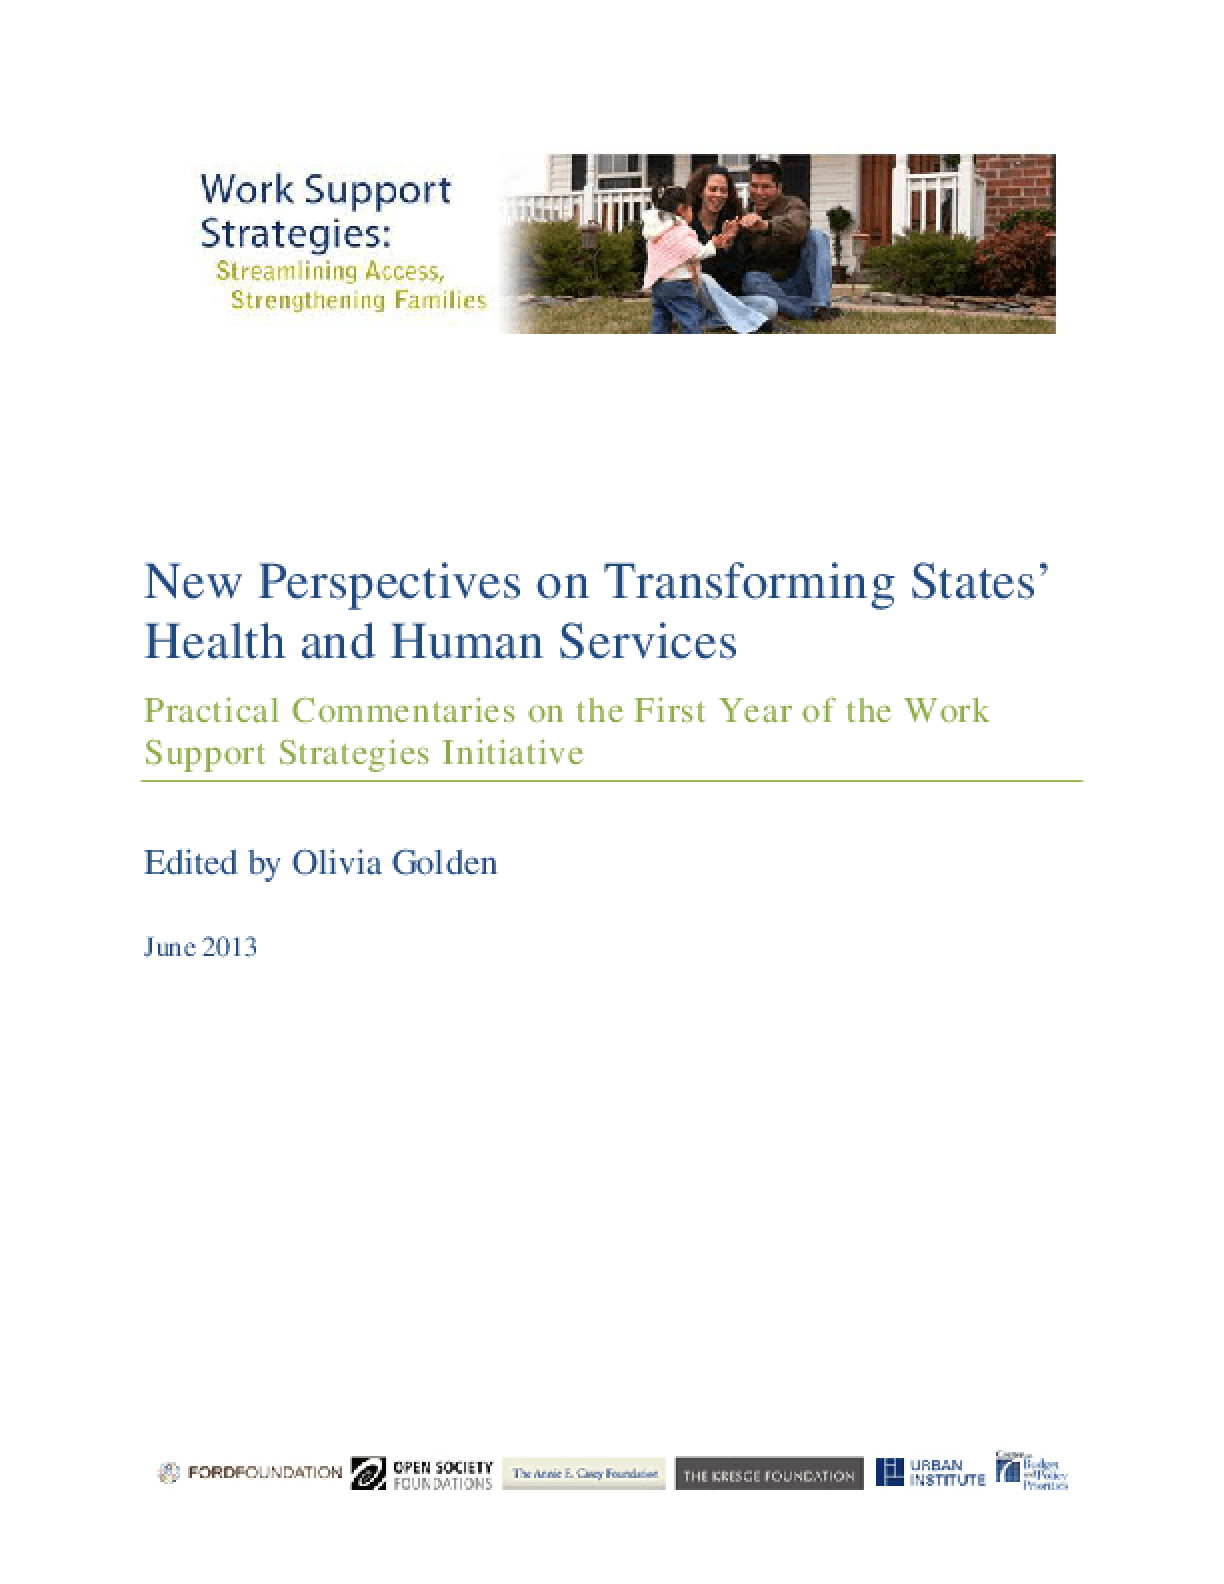 New Perspectives on Transforming States' Health and Human Services: Practical Commentaries on the First Year of the Work Support Strategies Initiative